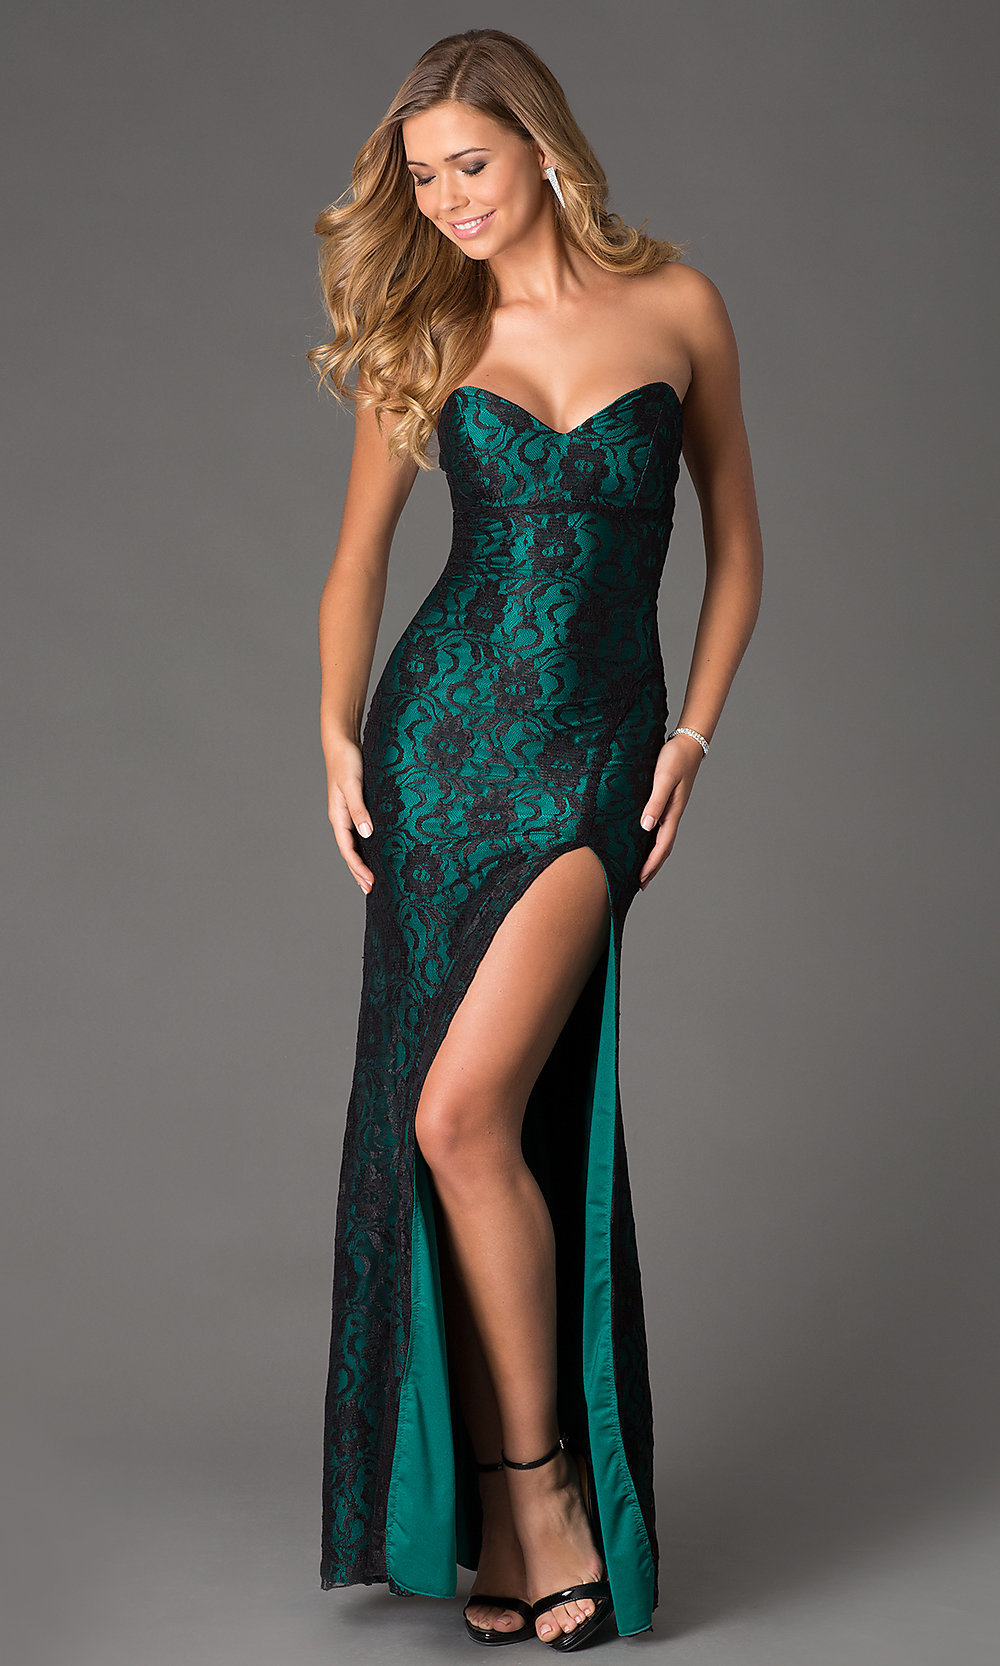 Lace Gown | DressedUpGirl.com  |Formal Ball Dresses With Lace